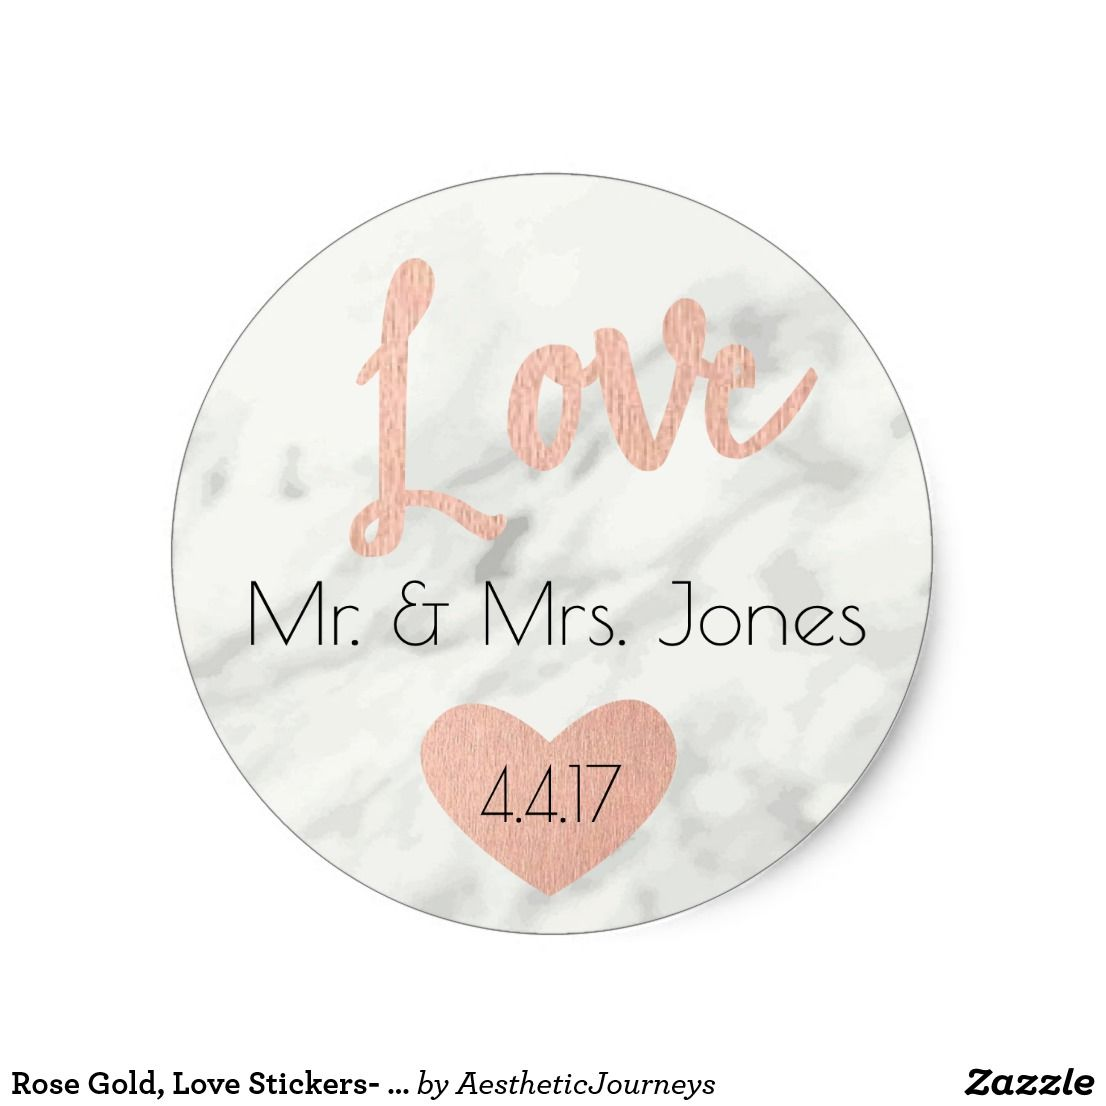 Rose Gold, Love Stickers- Wedding Favors Classic Round Sticker These ...